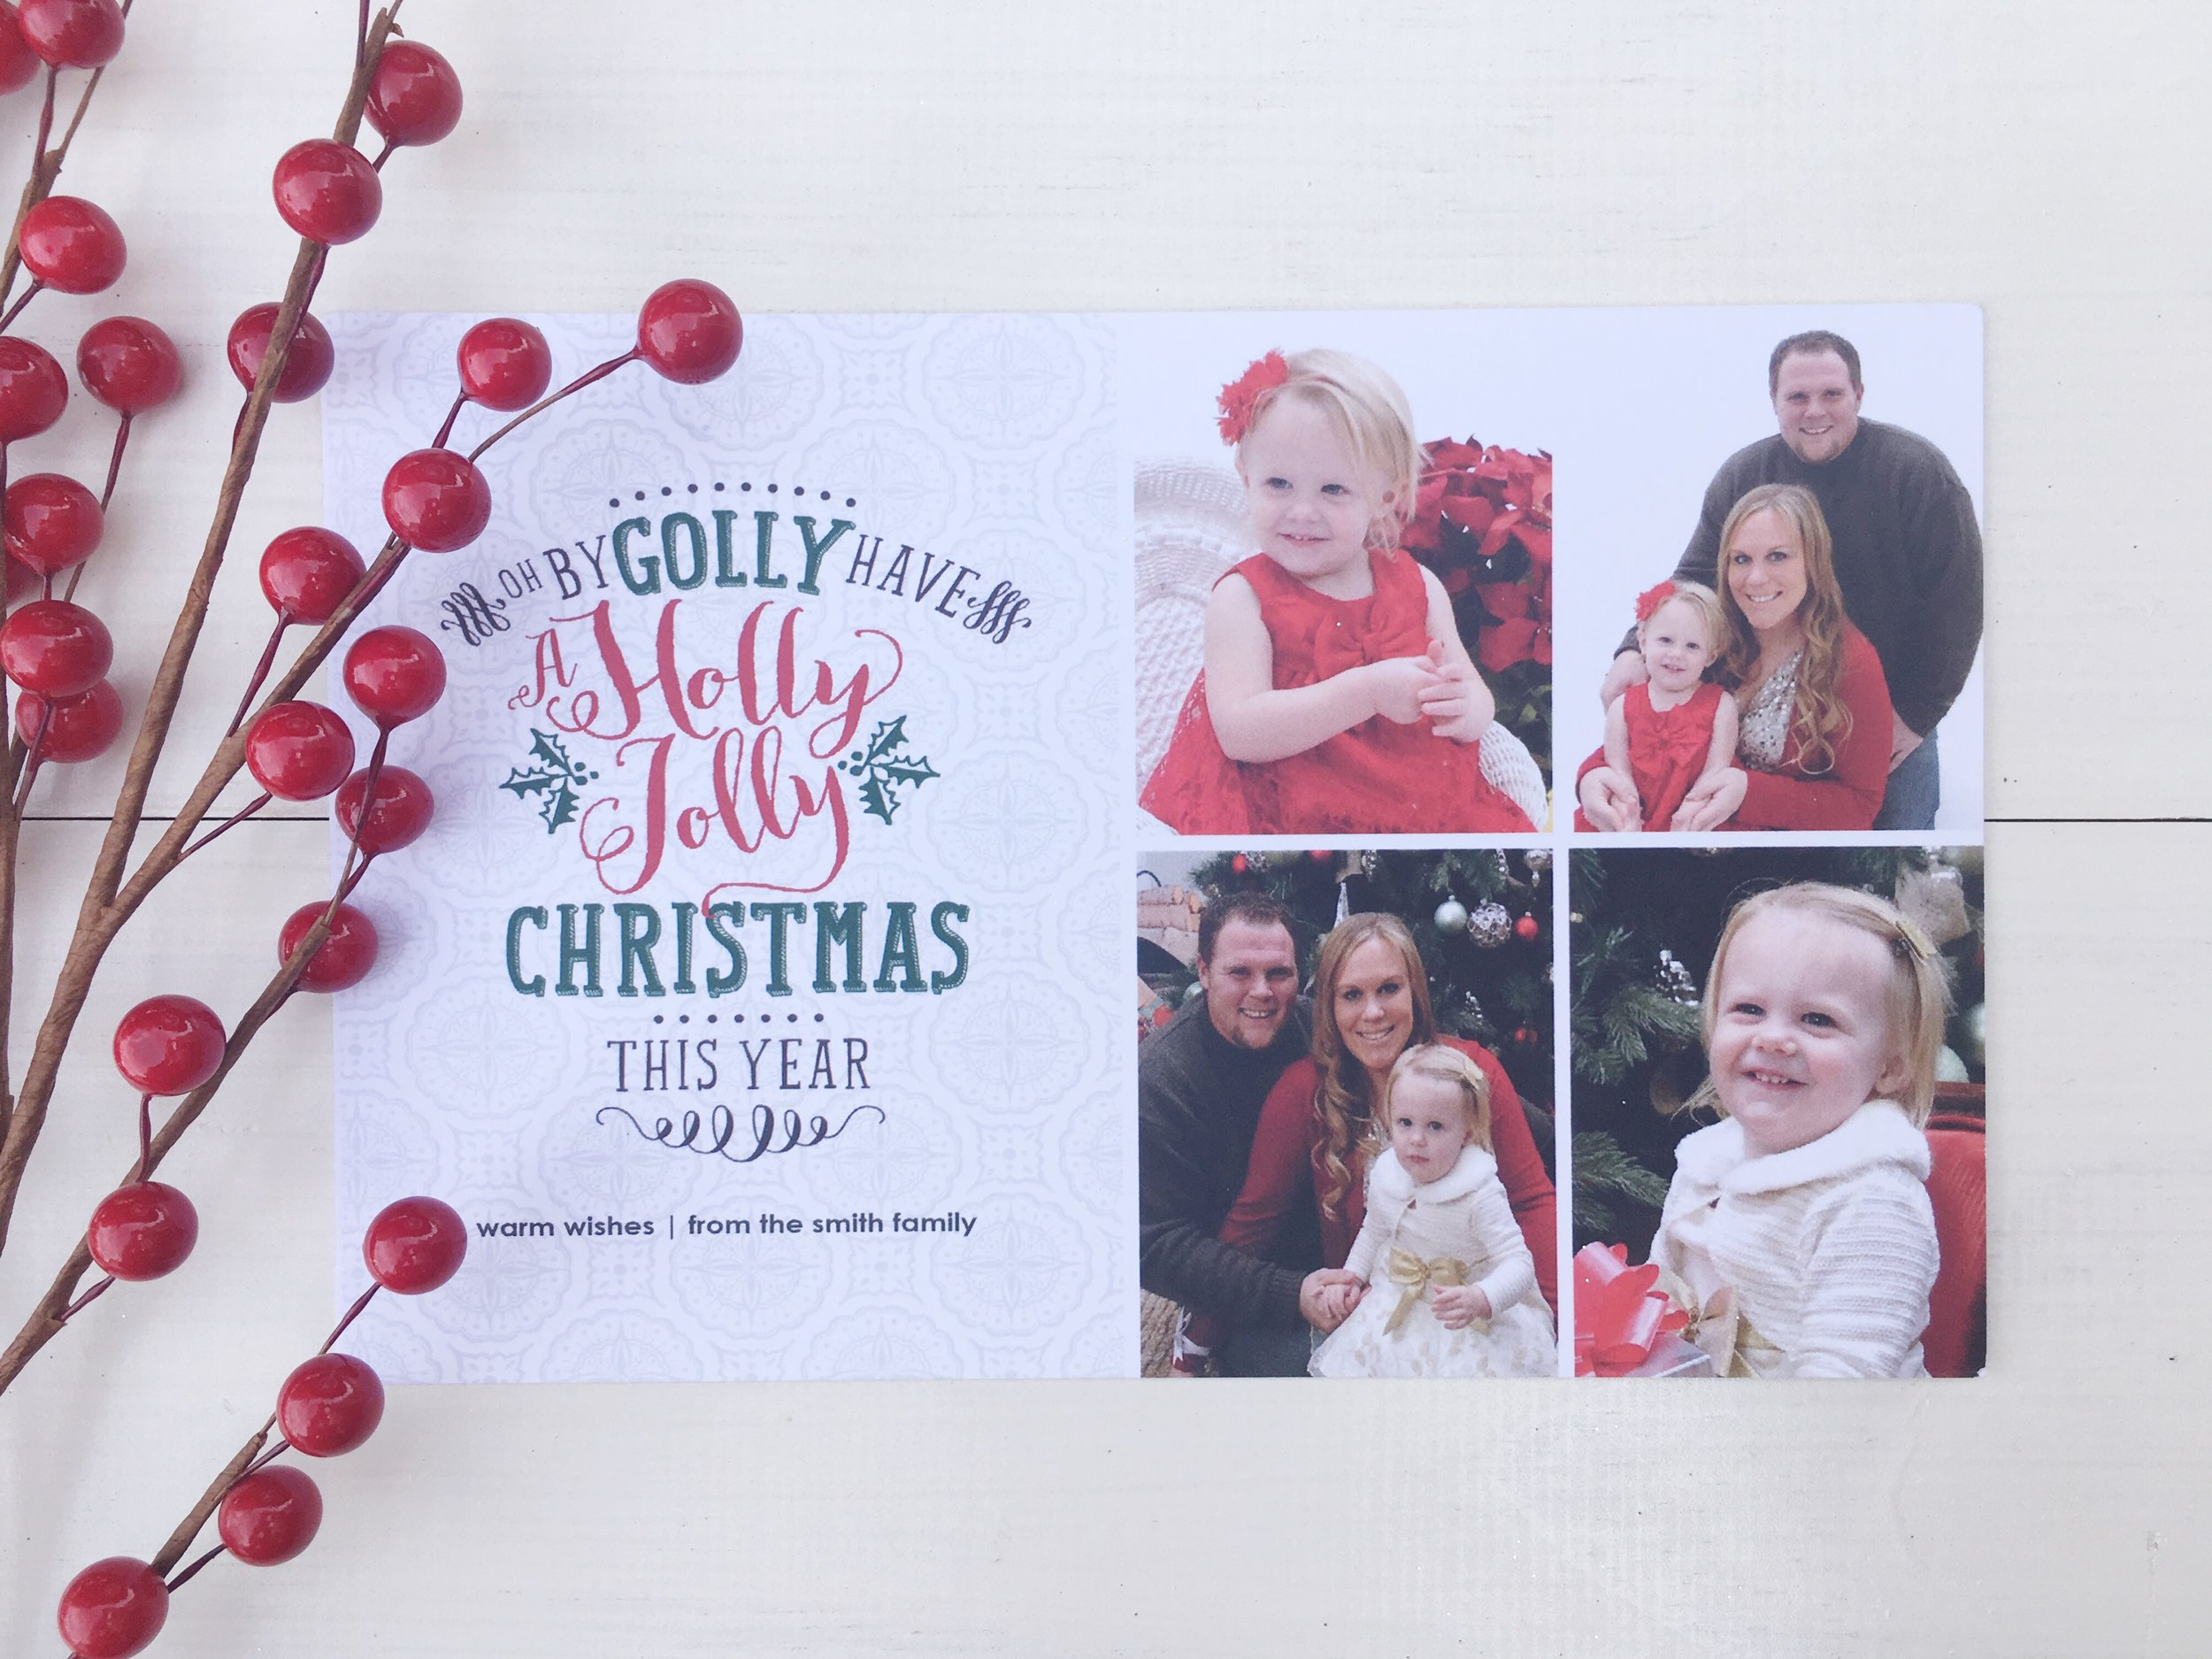 jsd holly jolly christmas card.jpg